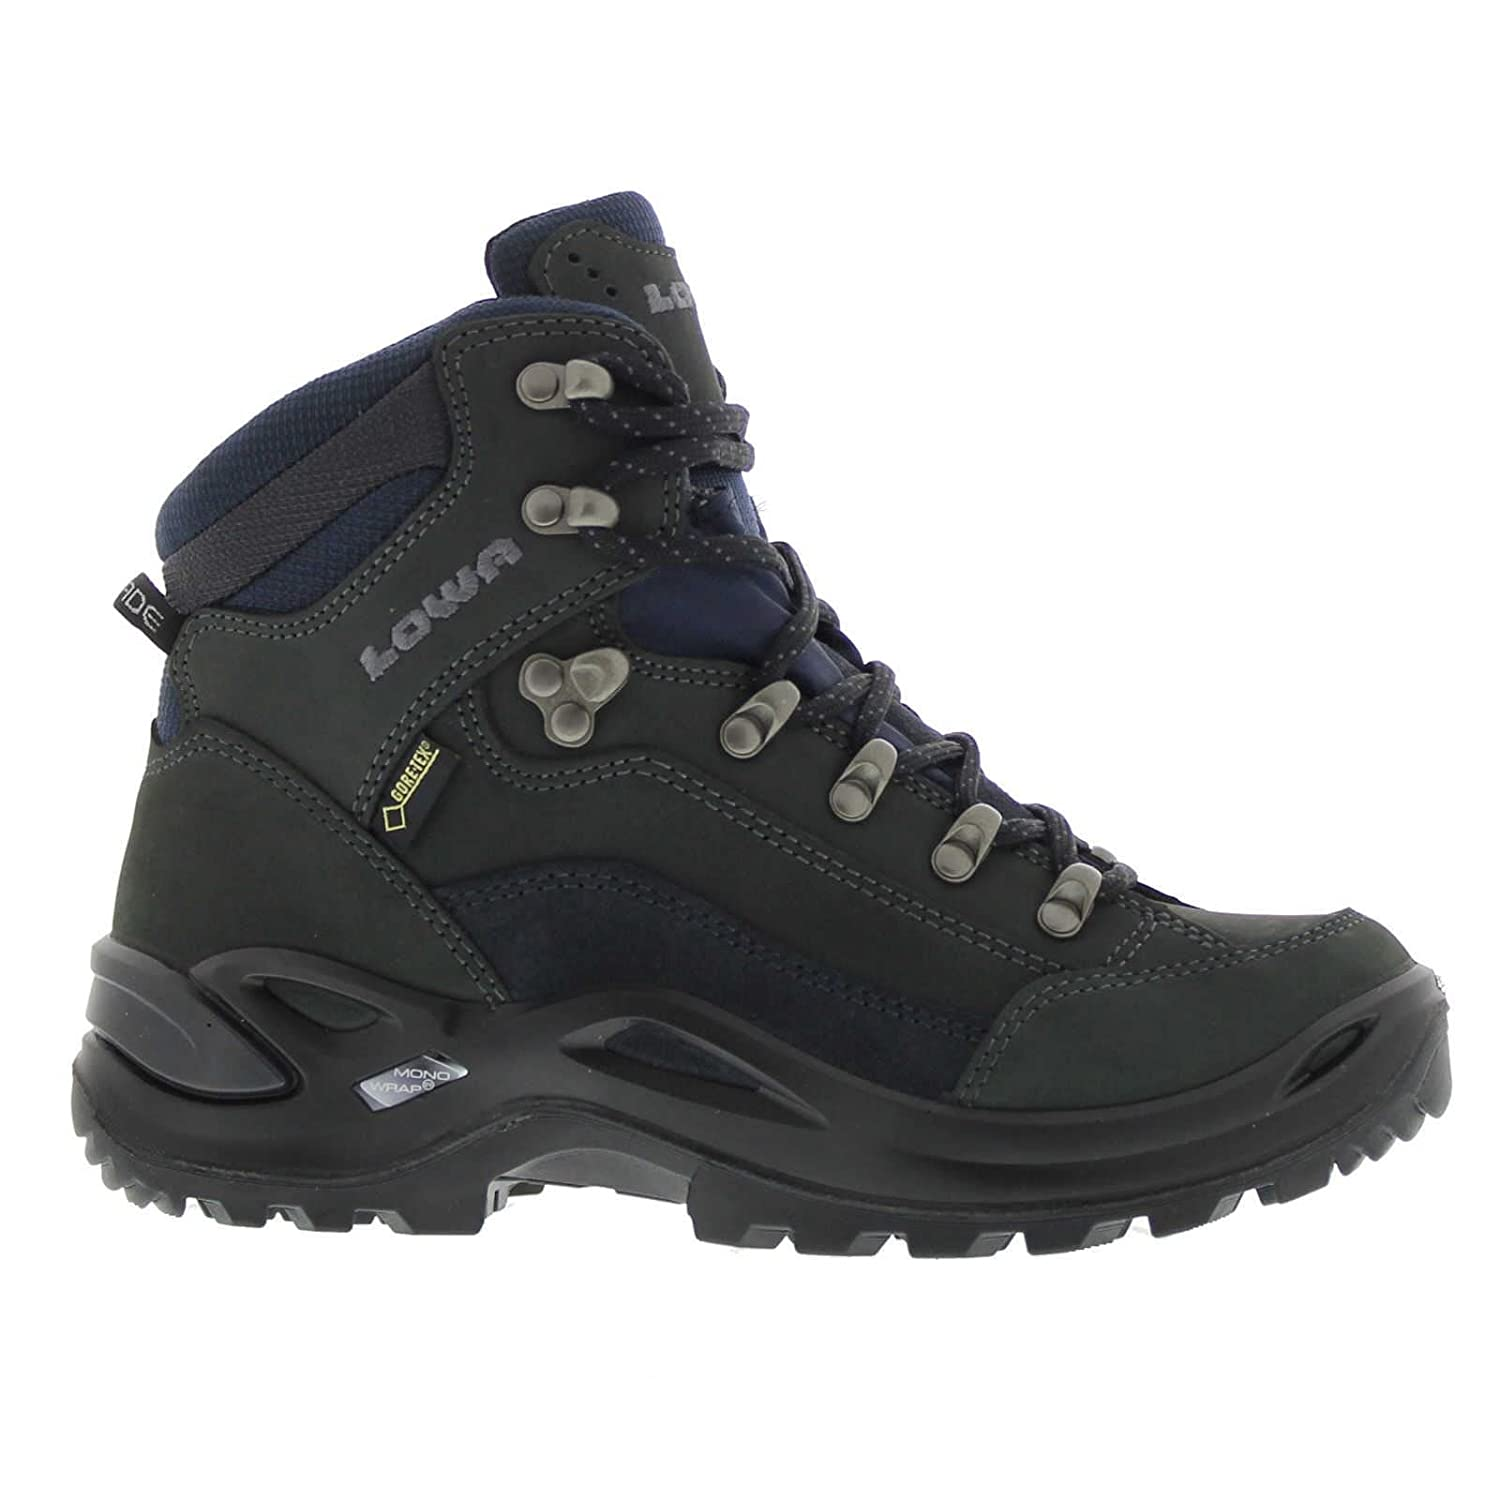 Lowa Women's Renegade GTX Mid Hiking Boot B002MPPVQO 7 B(M) US|Dark Grey/ Navy